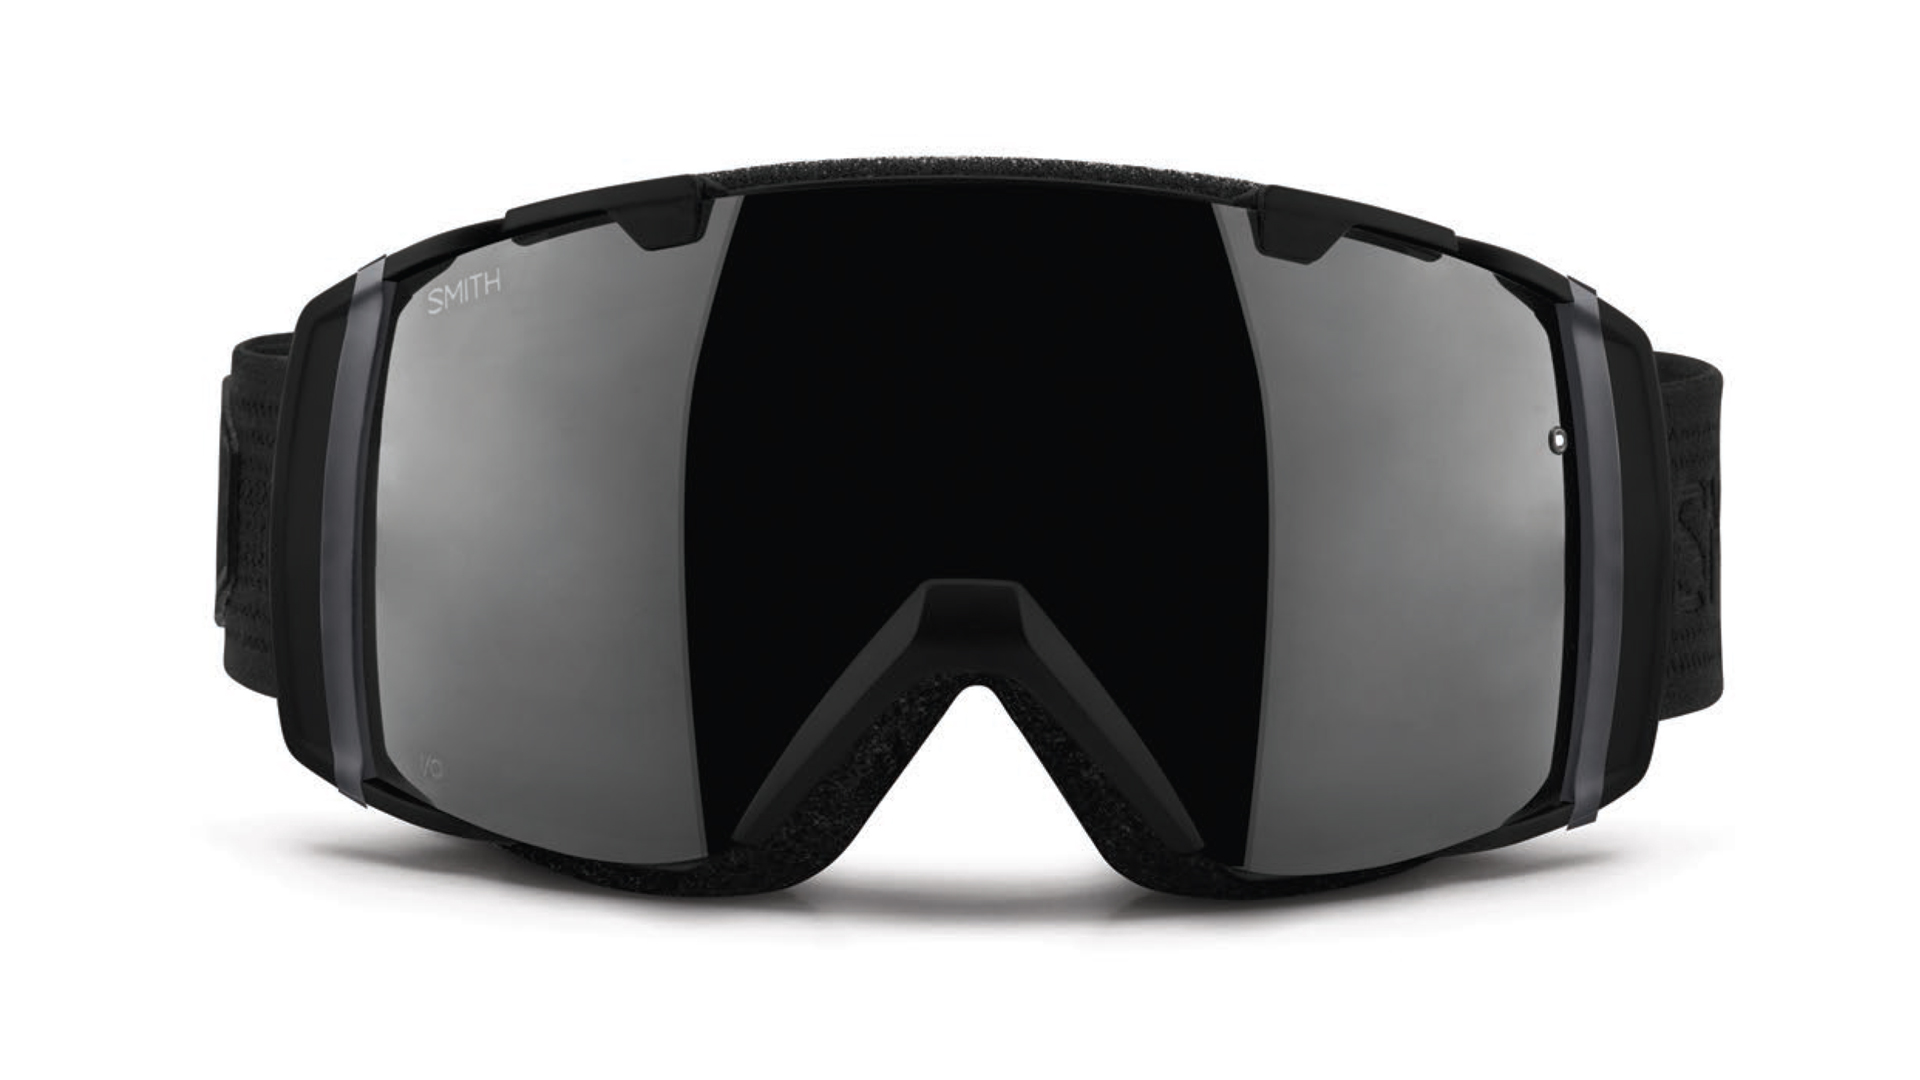 1ebbb66f7b Pursue Your Thrill with the Best ChromaPop Smith Goggles of 2017 ...